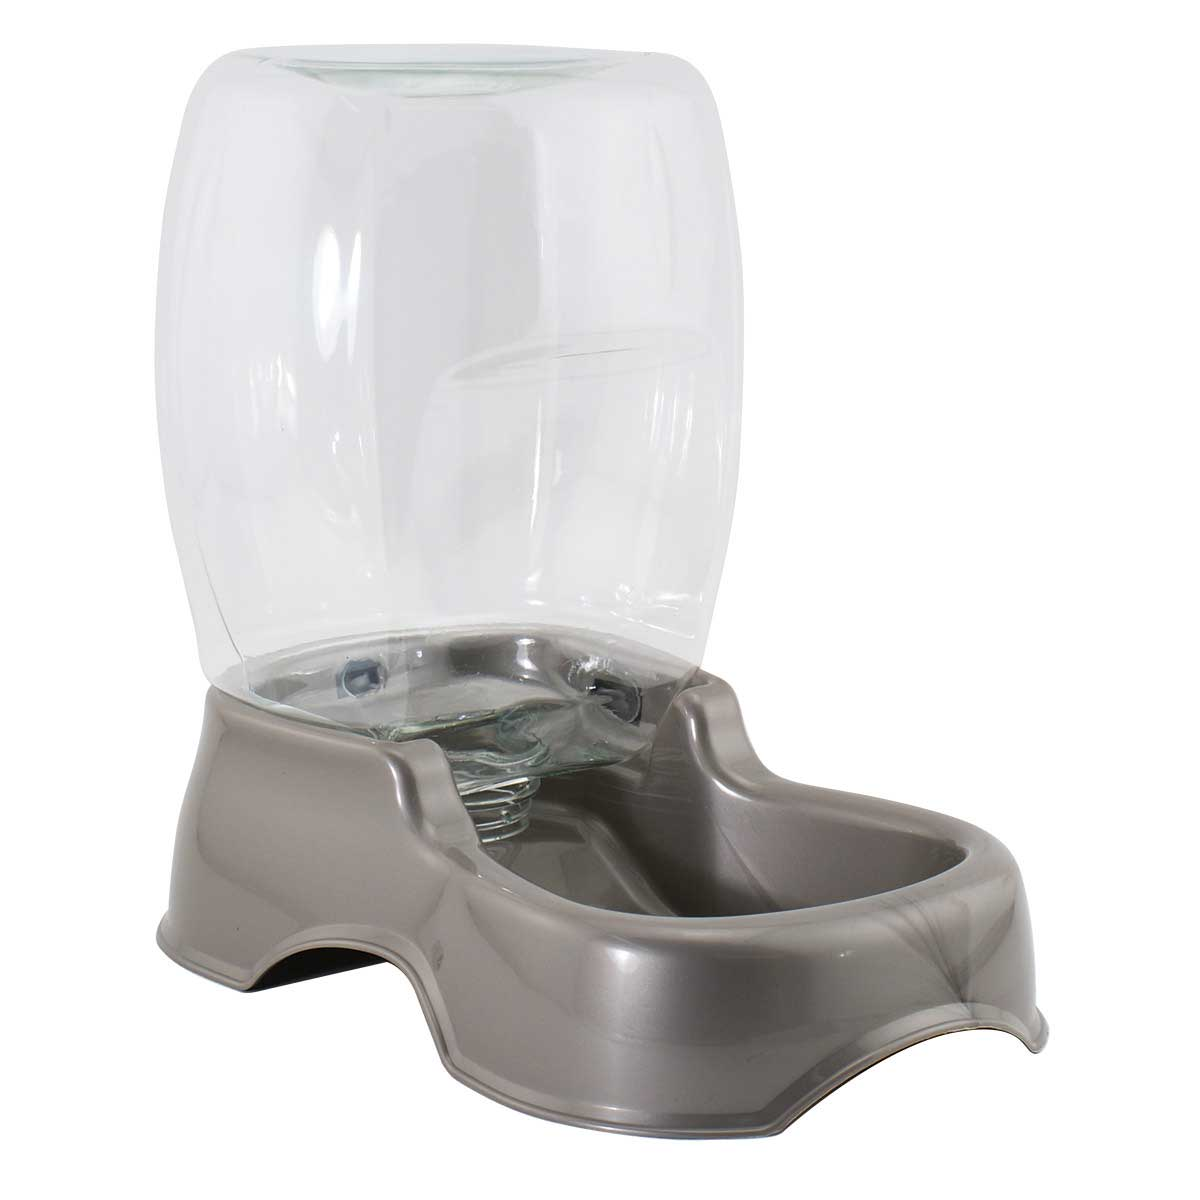 Pearl Tan Petmate Pet Cafe Waterer .75 Gallon